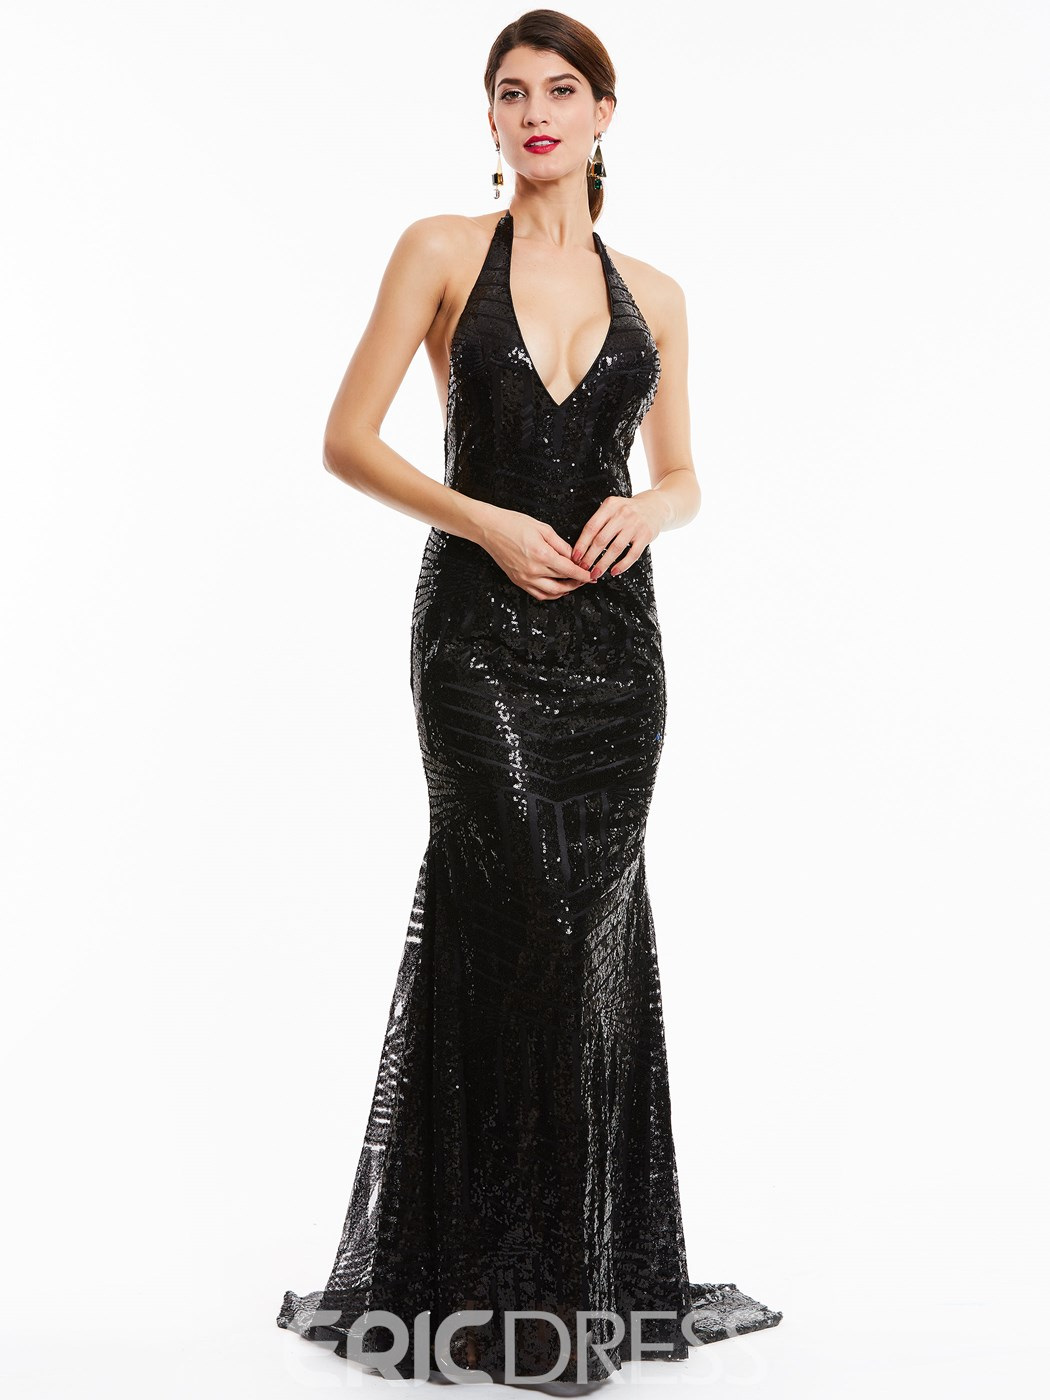 Ericdress Halter Neck Backless Sequins Mermaid Evening Dress